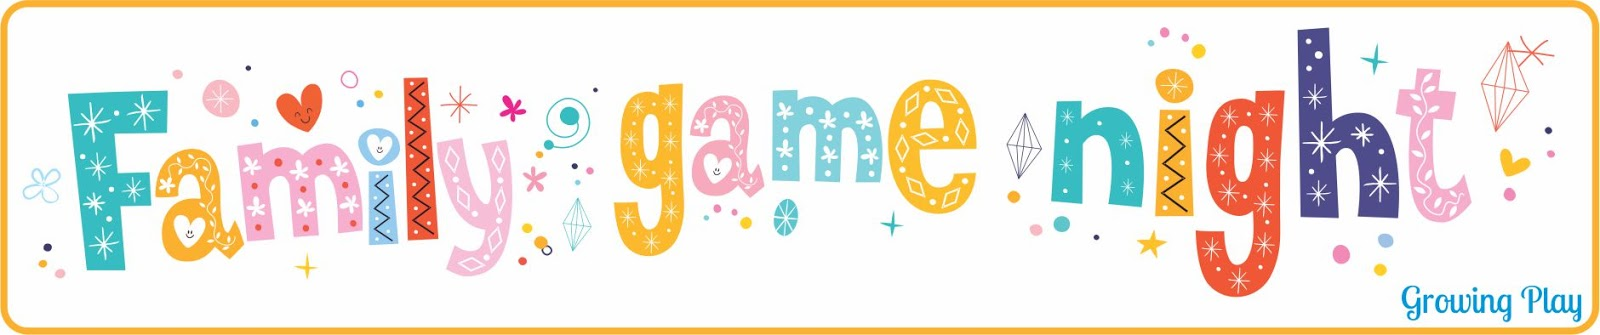 Growing Play Category Games For Family Game Night